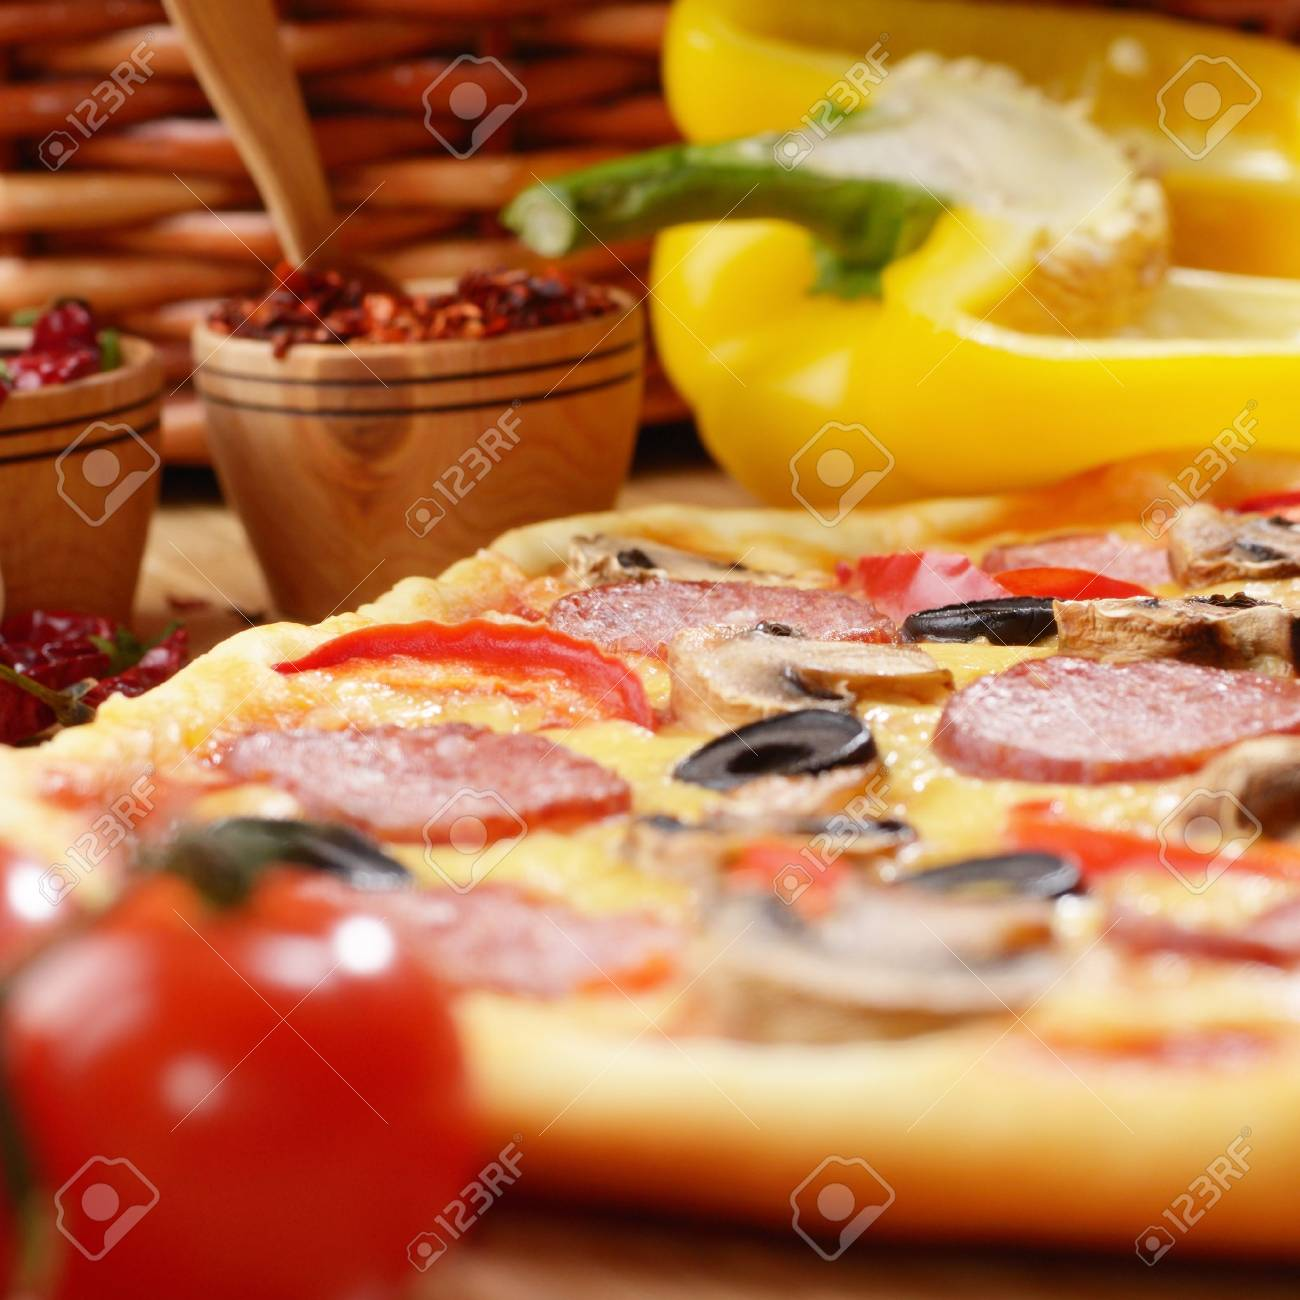 Pepperoni pizza with cherry and mushrooms on the bamboo kitchen table Stock Photo - 11770849